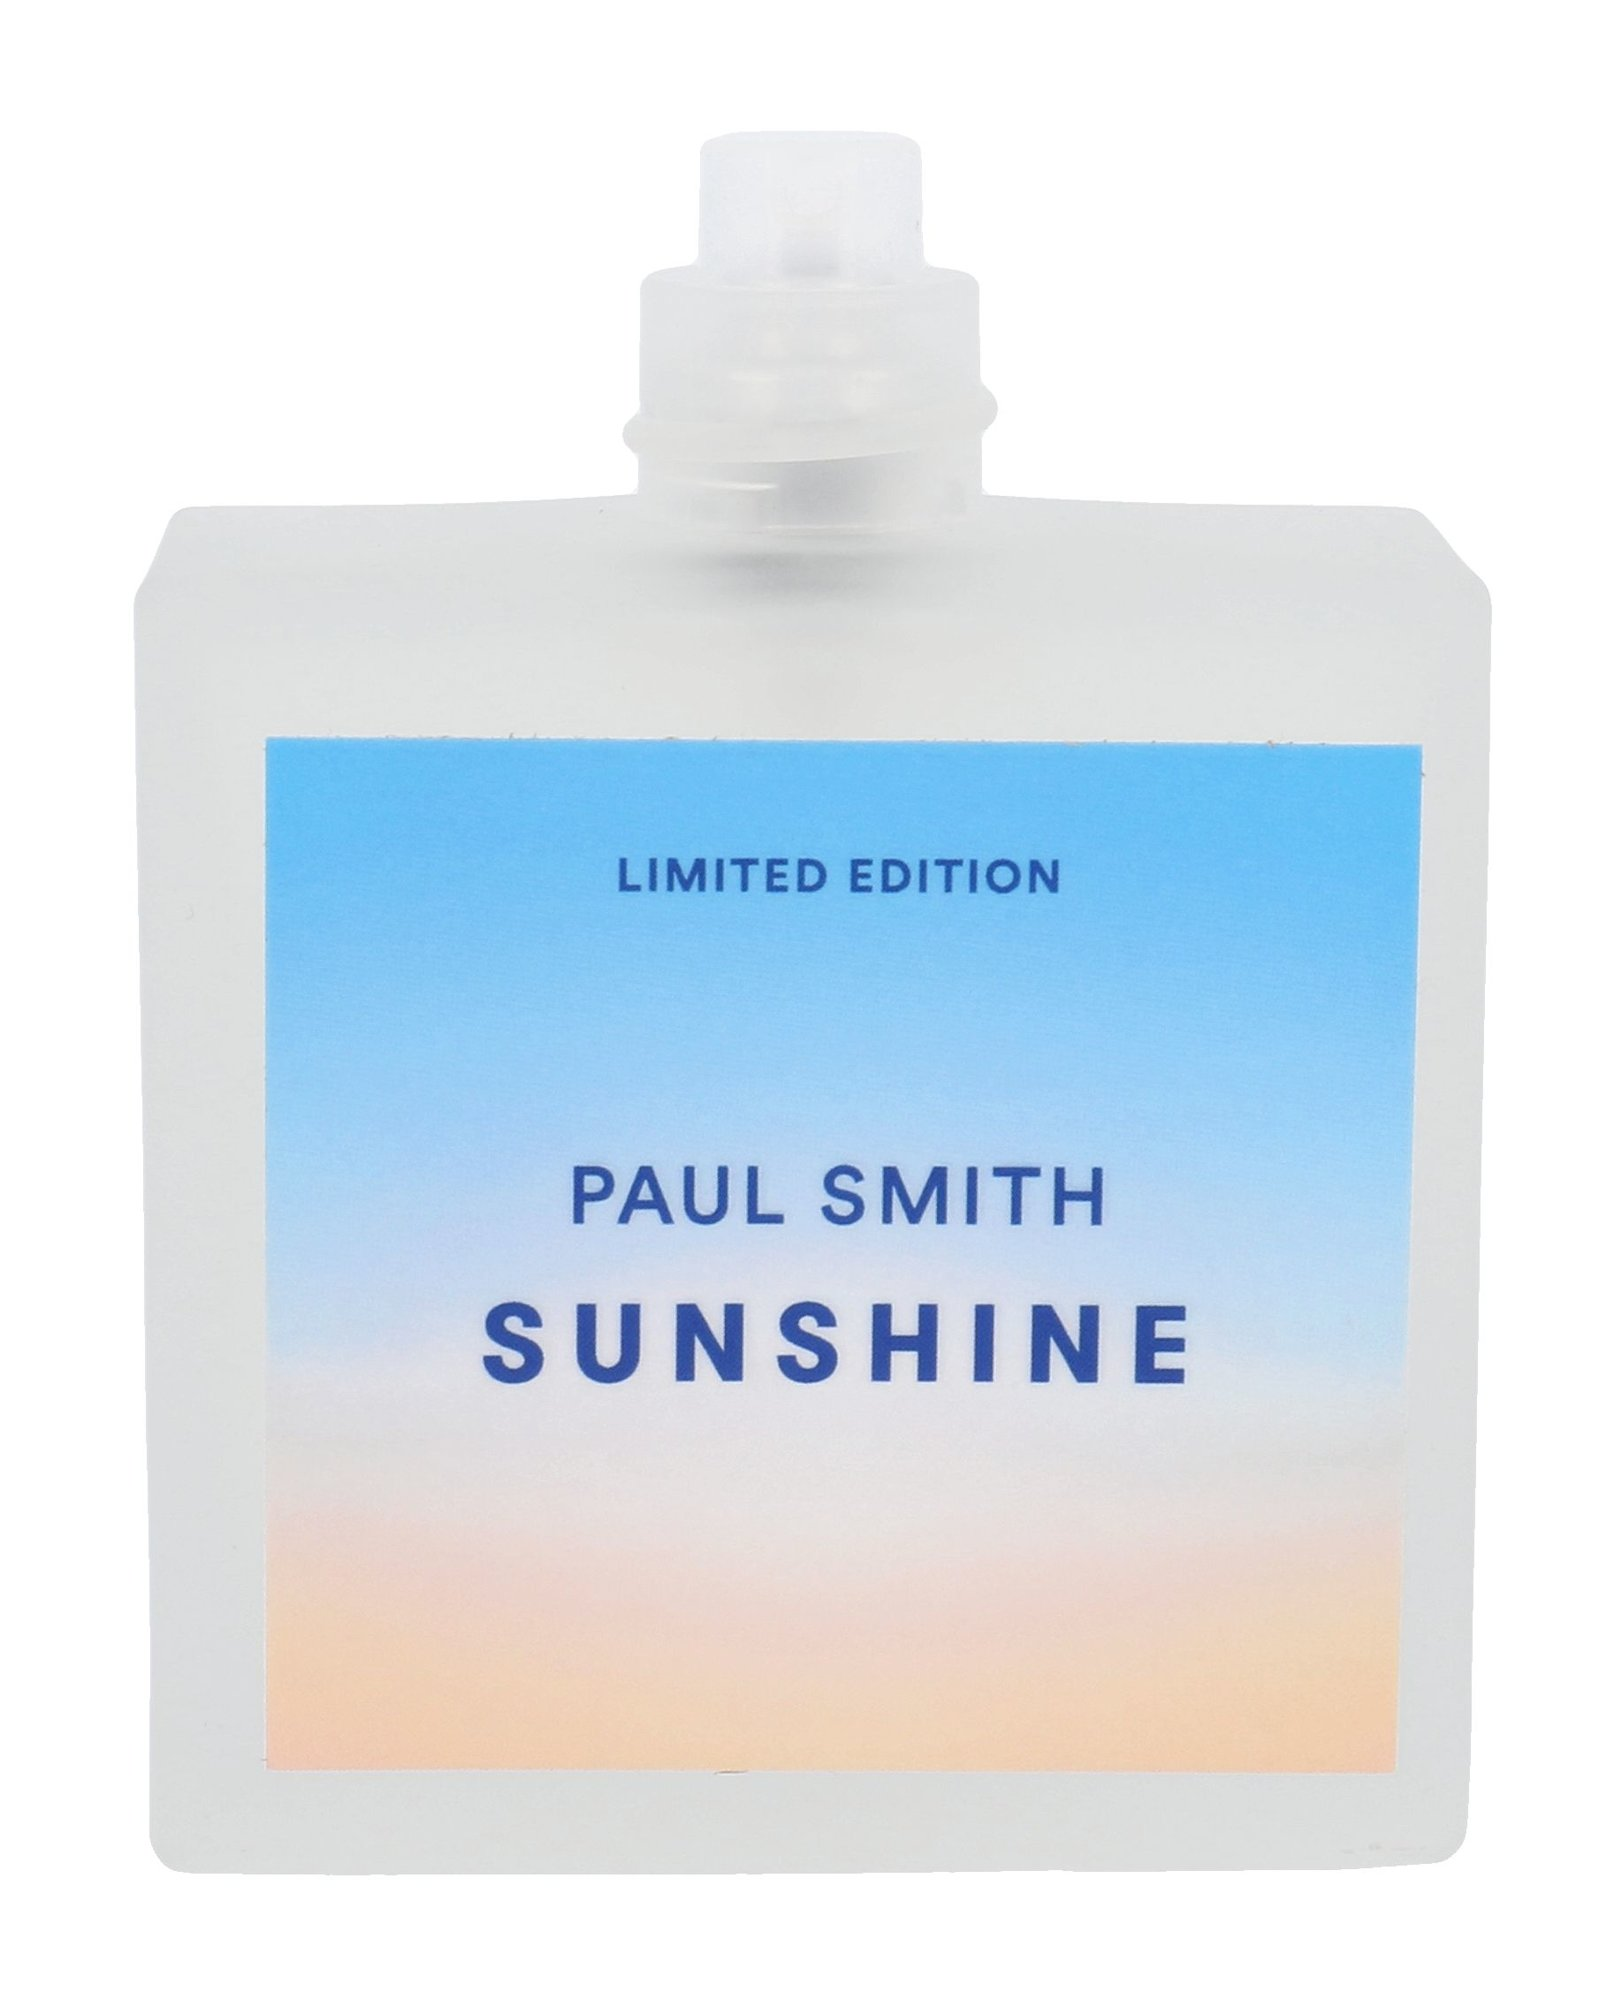 Paul Smith Sunshine For Men EDT 100ml  Limited Edition 2016